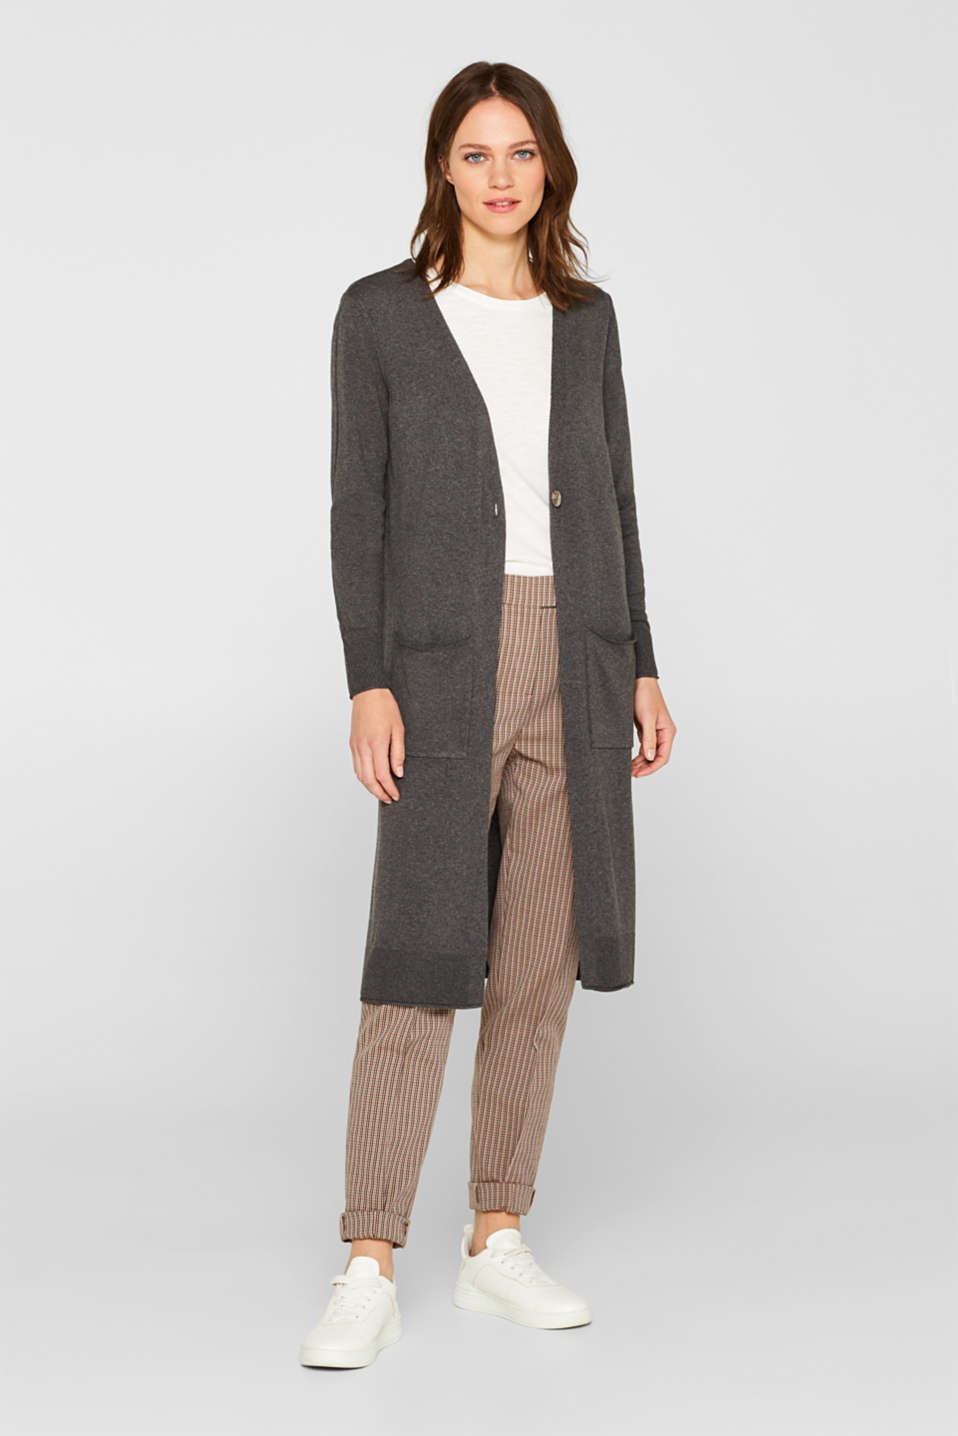 Linen blend: Long cardigan with pockets, DARK GREY 5, detail